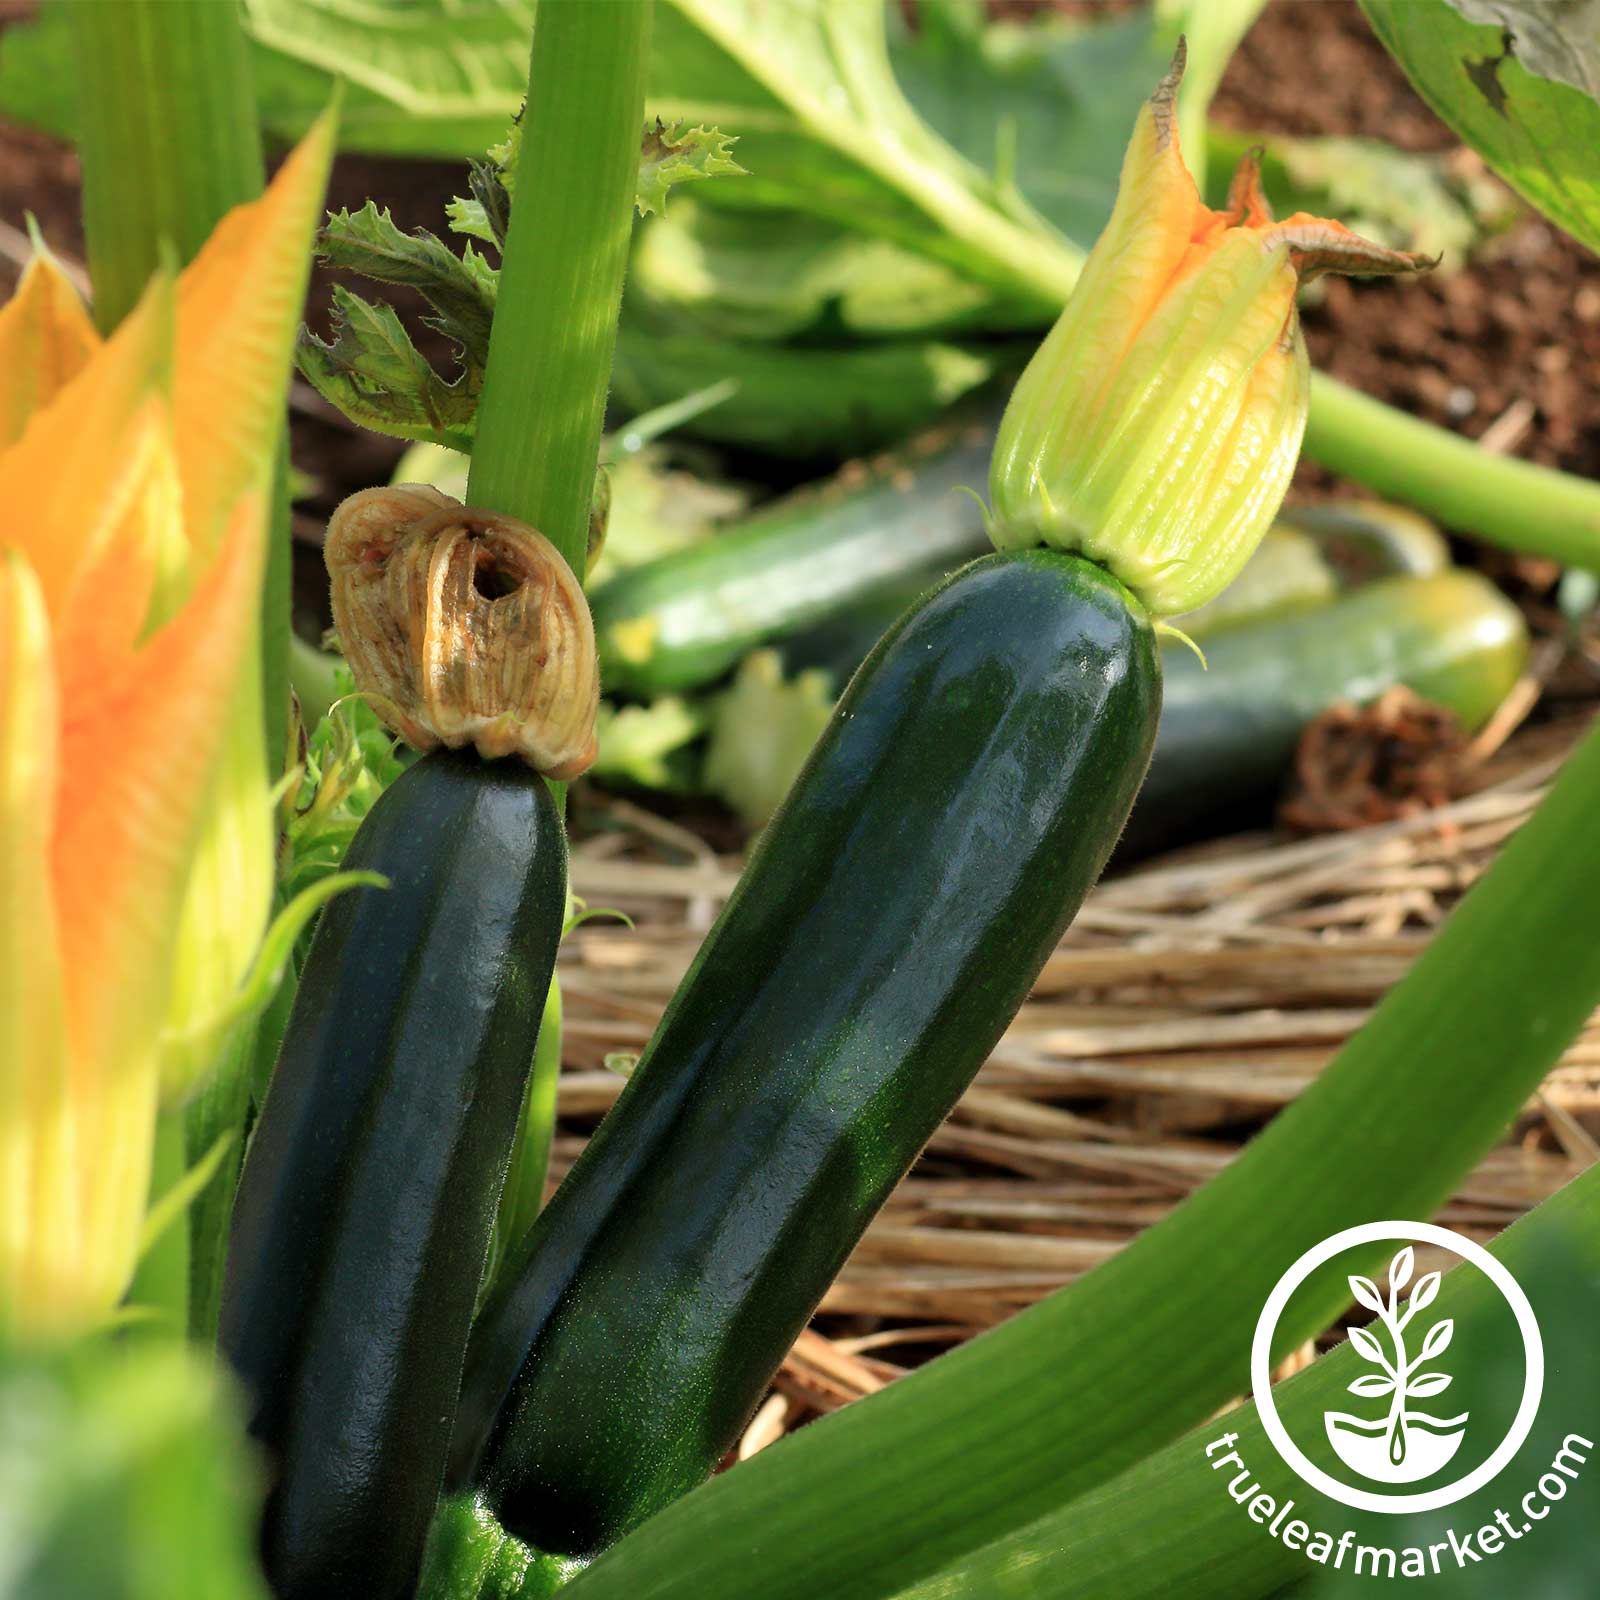 Squash Summer Zucchini Black Beauty Seed